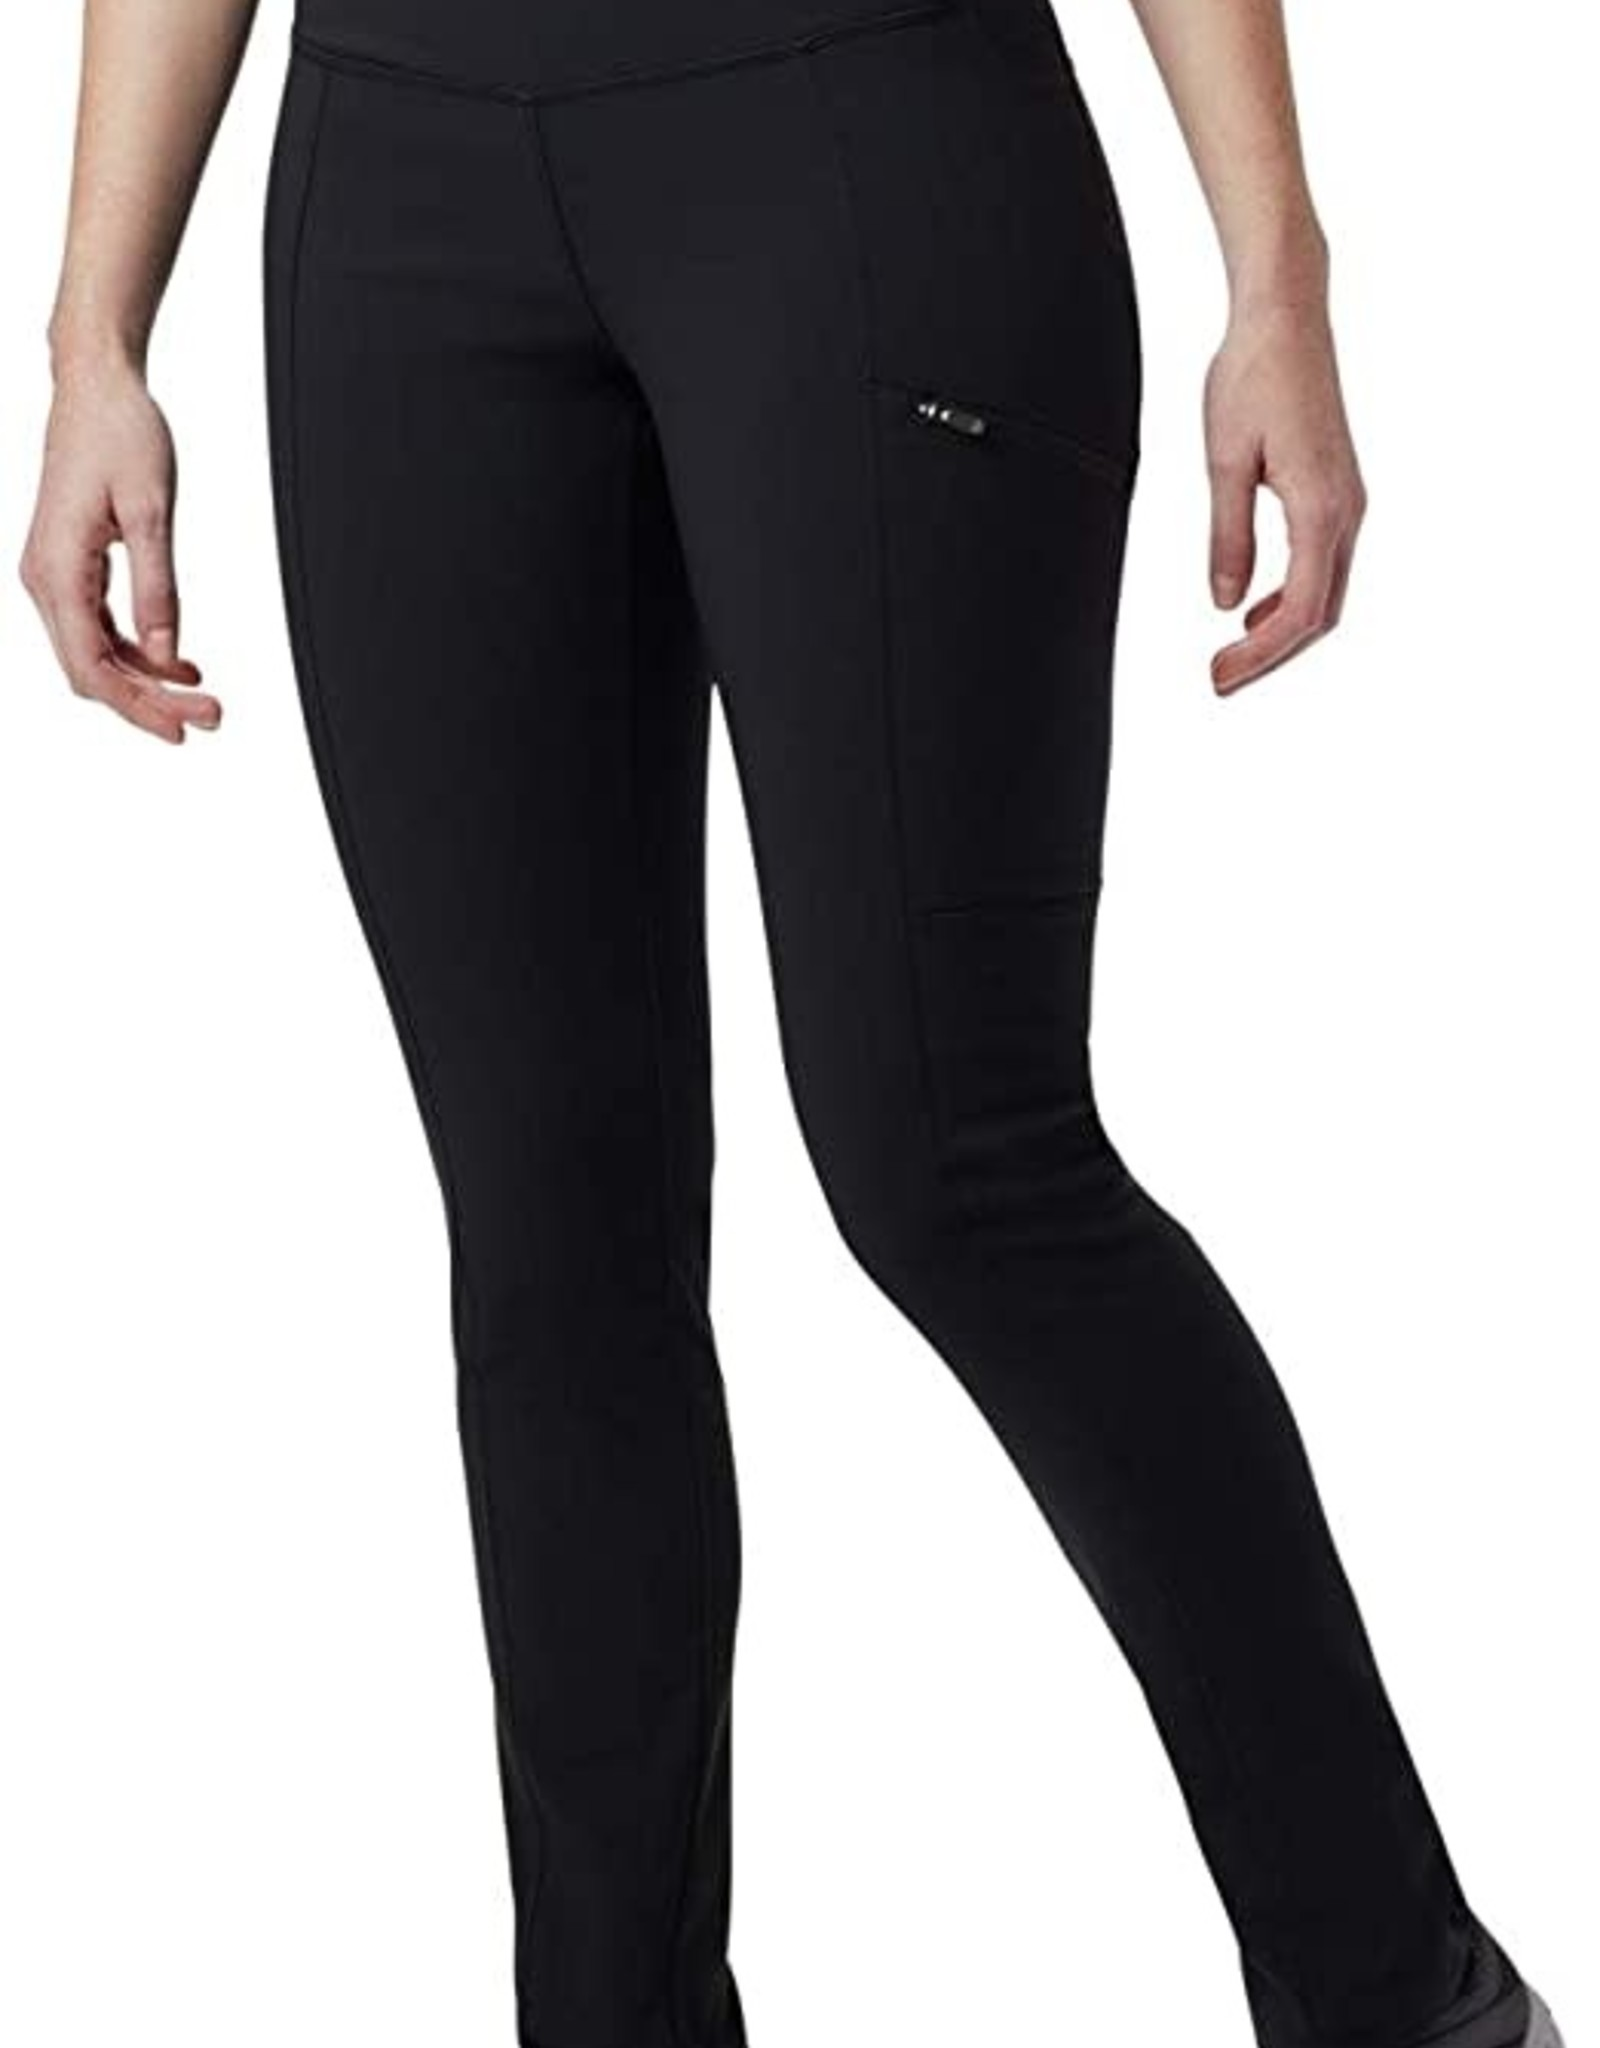 Columbia Highrise back beauty pants